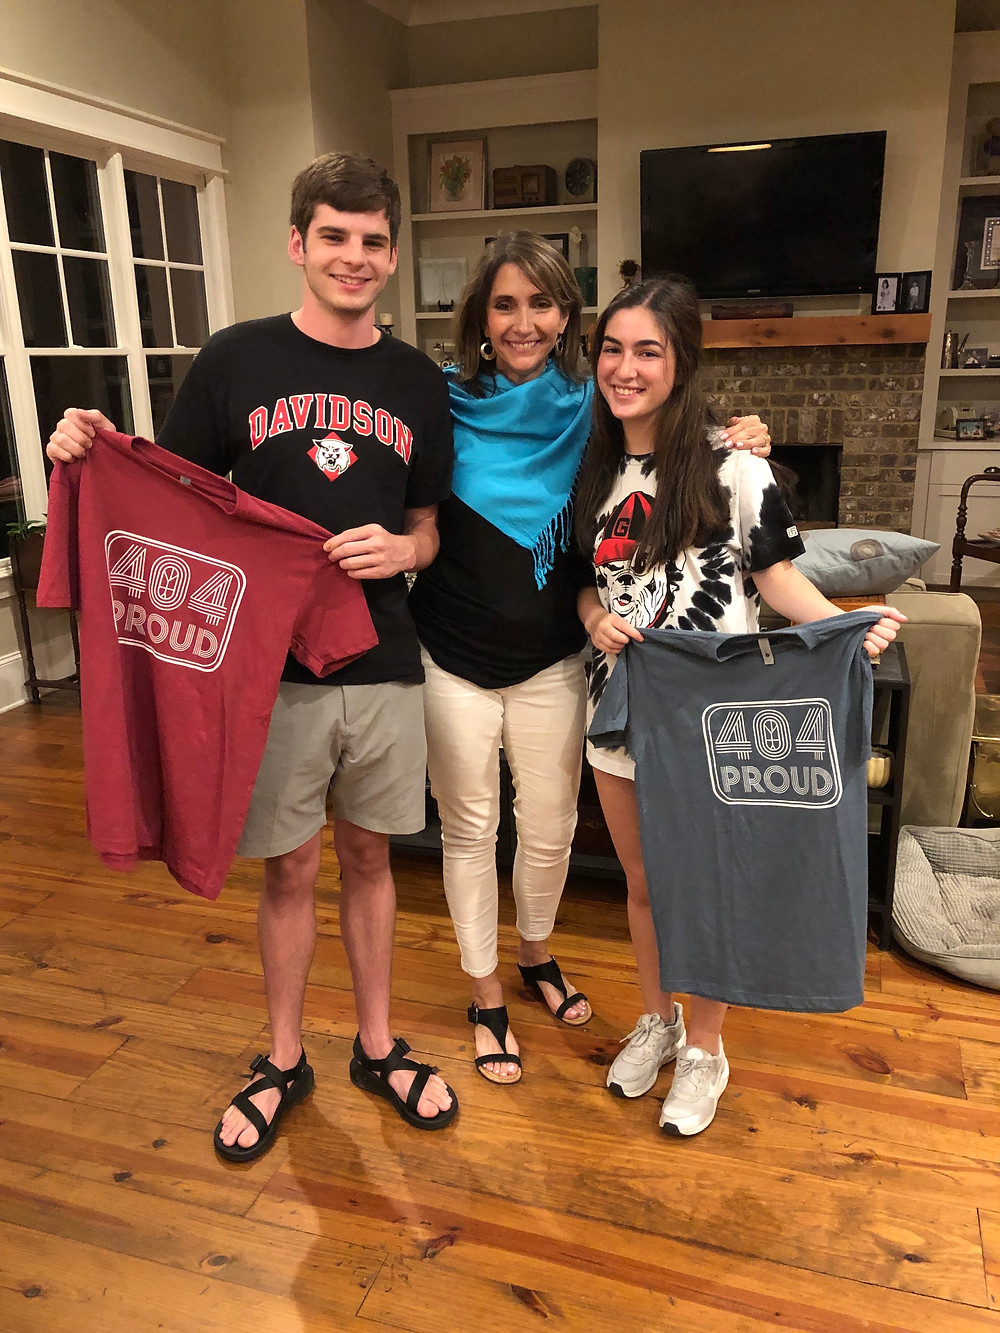 Drew Sheldon (left) and Jereme Weiner (right), pictured with Amy Durham, are two 2019 Branching Out Graduates. Drew will be attending Davidson College this fall as a member of the Diving Team while Jereme will be moving to Israel for a year before joining the University of Georgia Class of 2024.